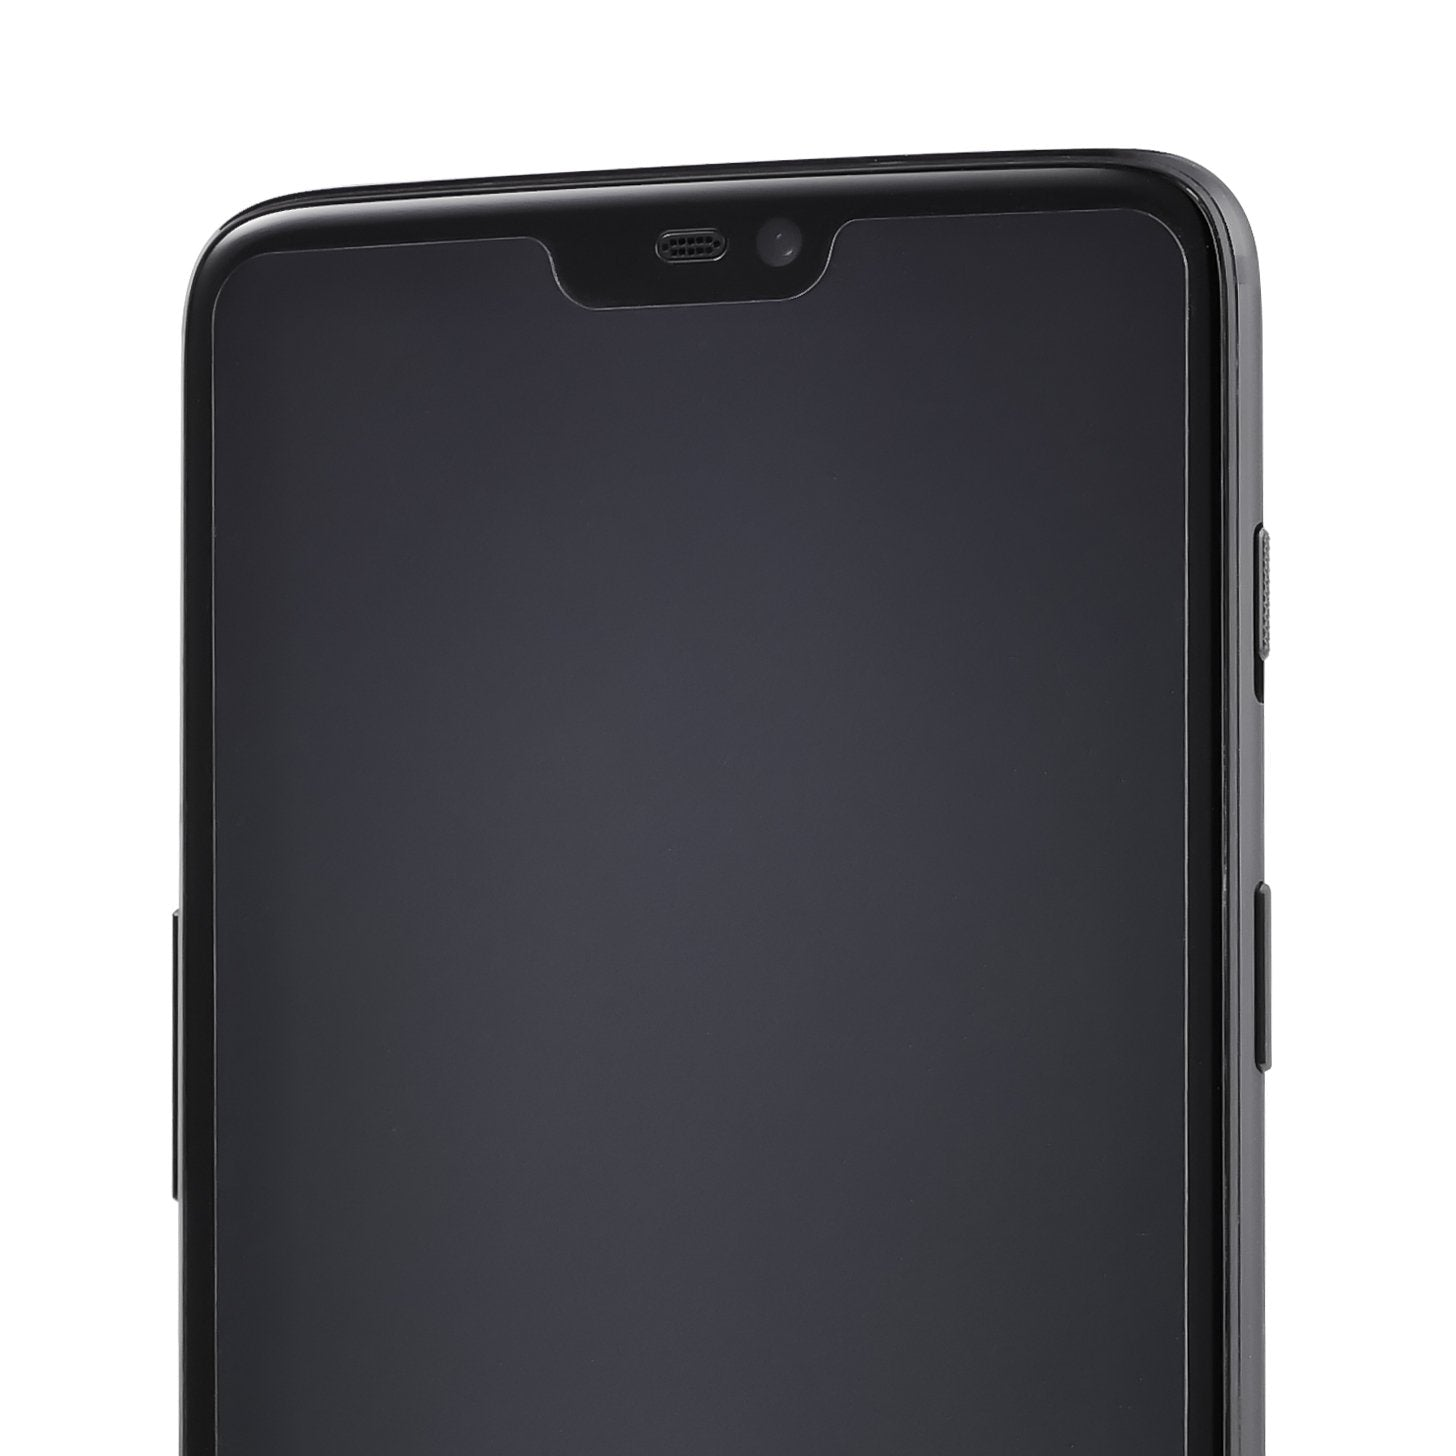 RhinoShield Impact Resistant Screen Protector for OnePlus 6